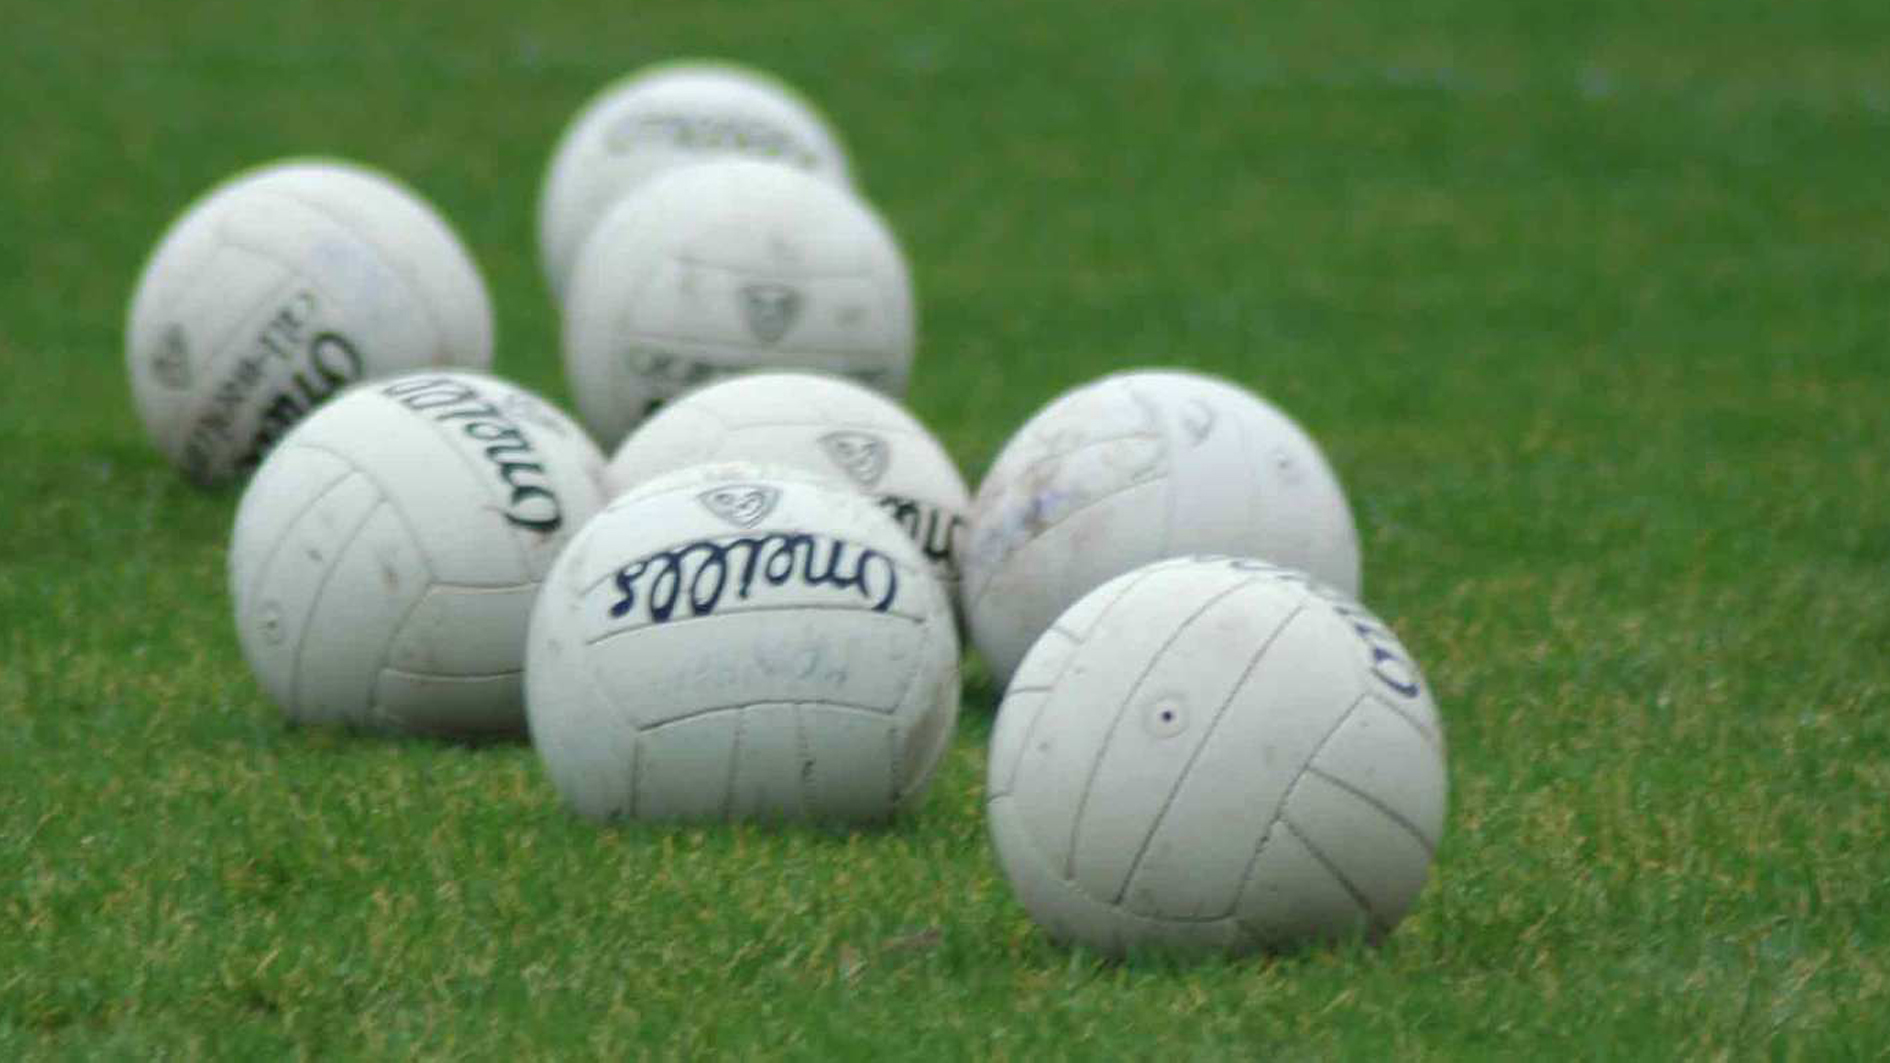 GAA Pitches To Open For Training On 24th June